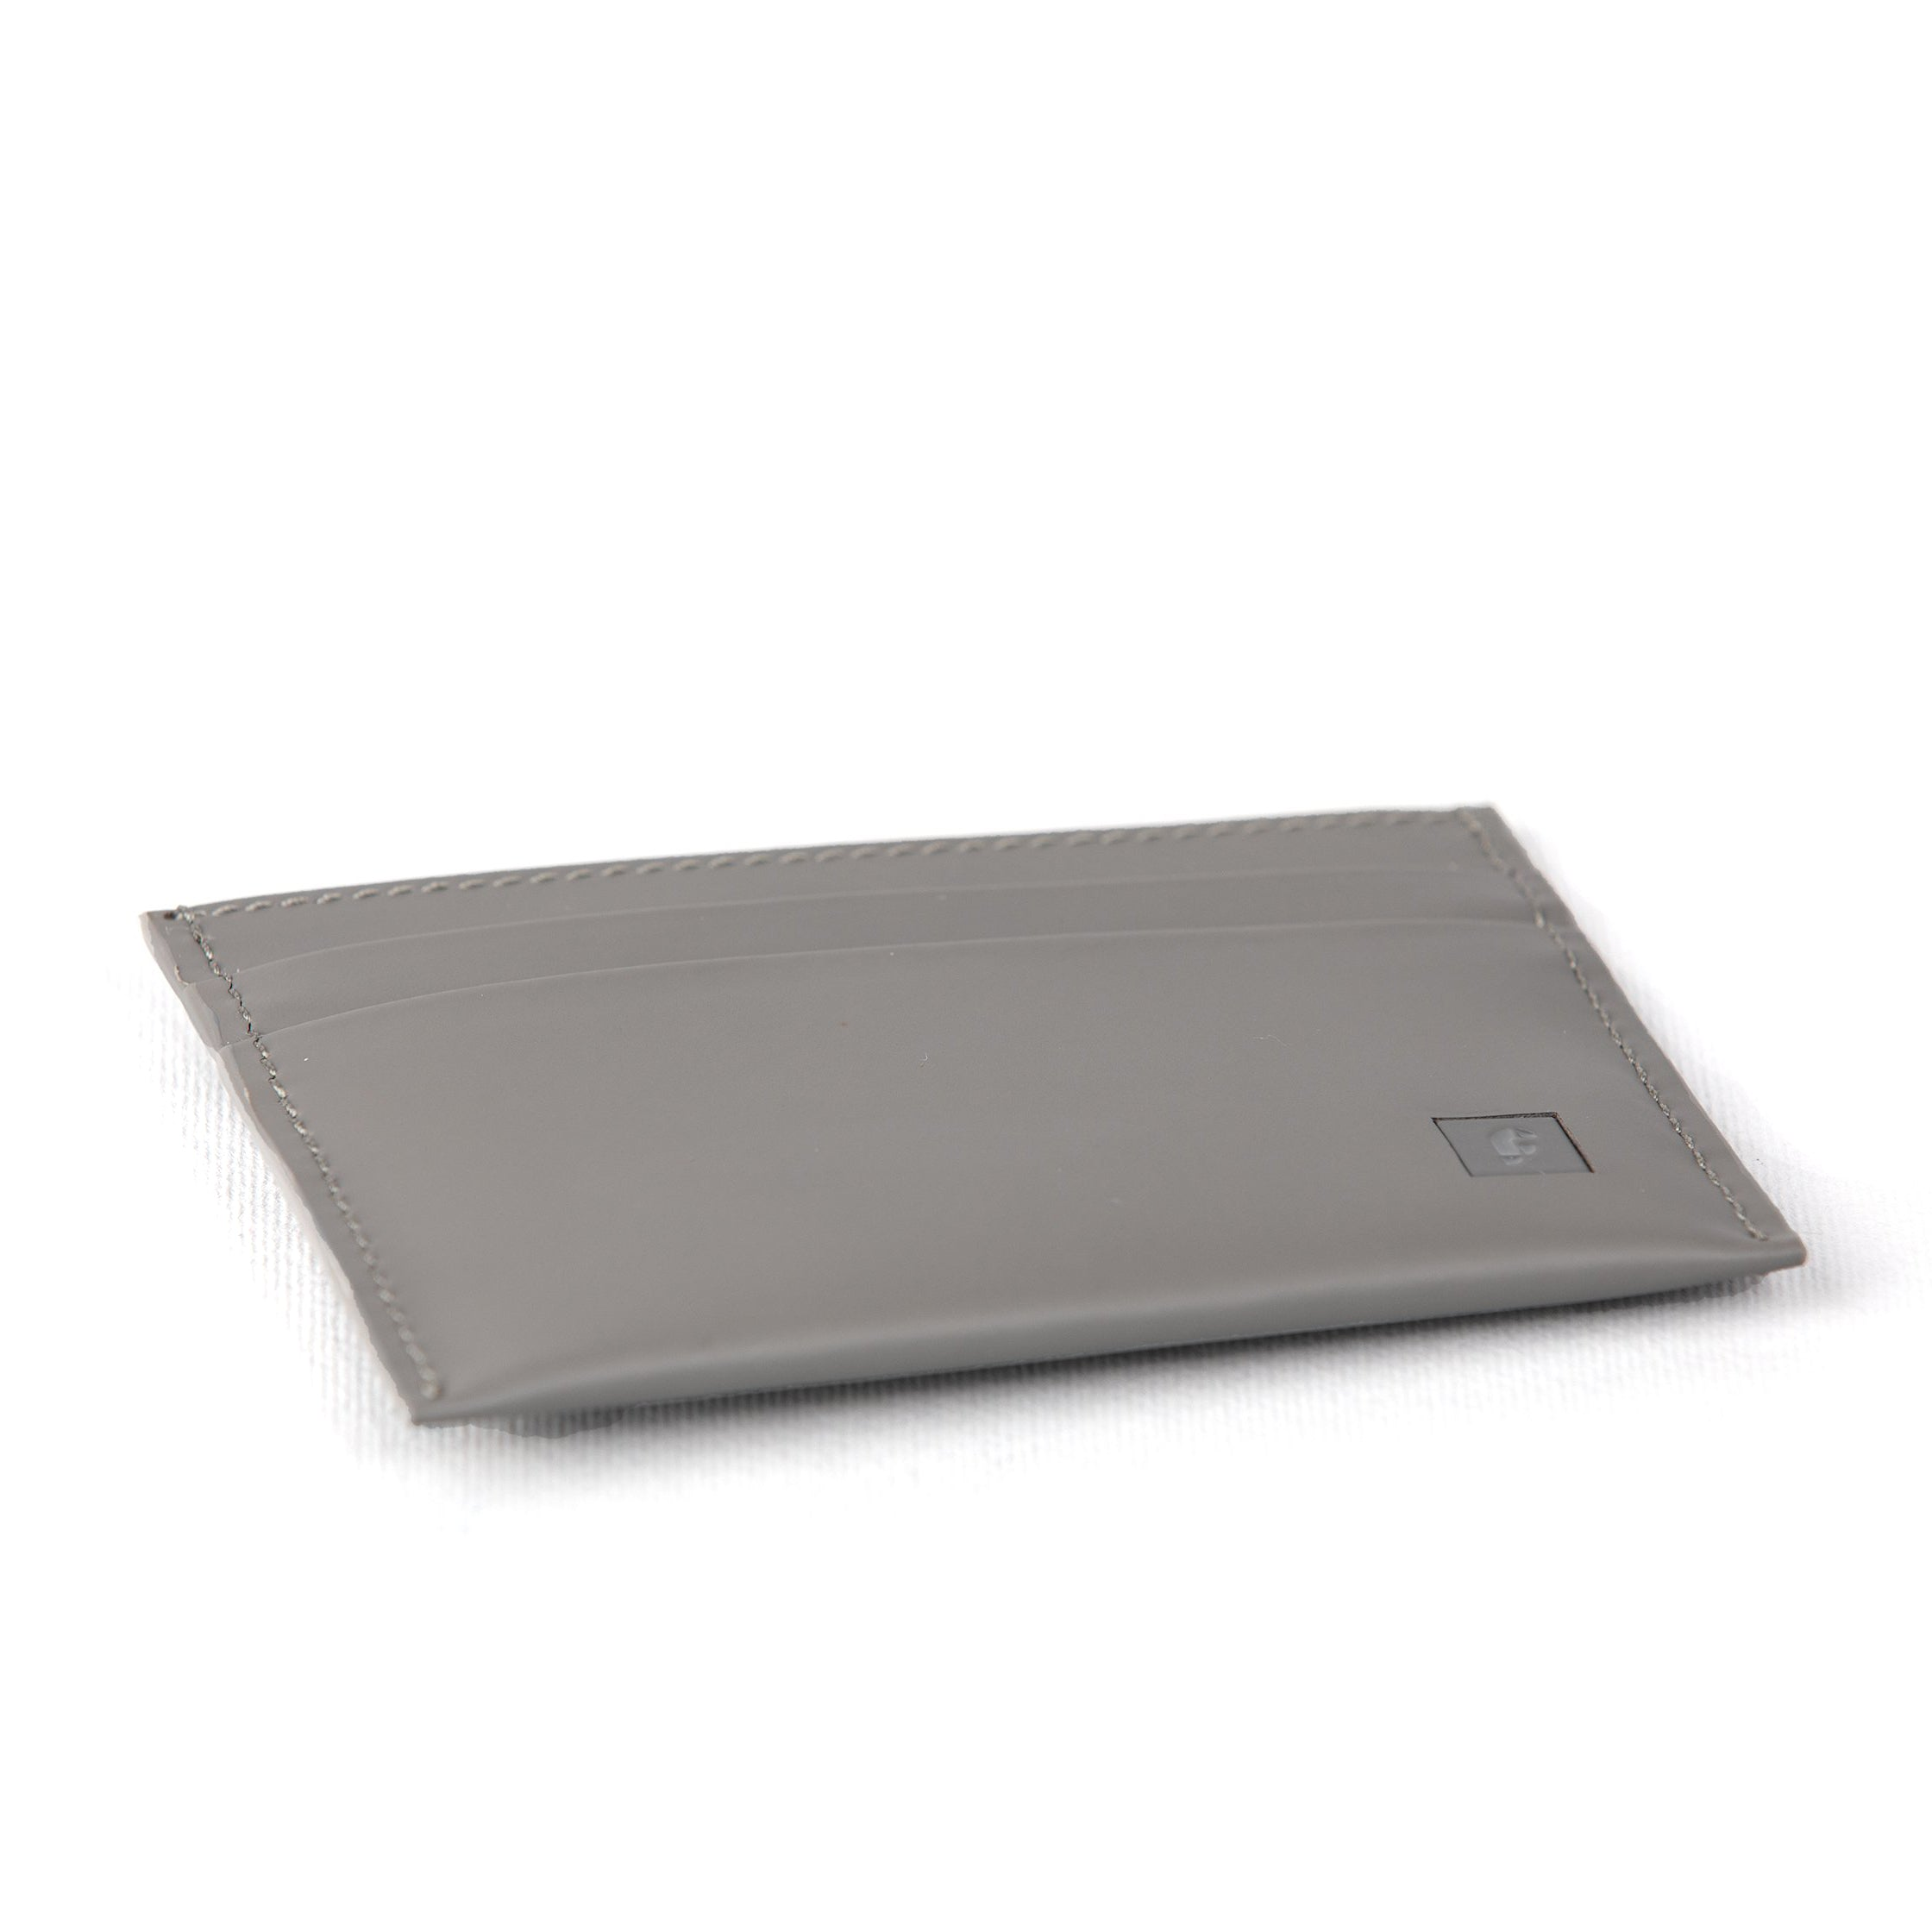 Schist Oxford Soft Matte Credit Card Holder  (FP103)